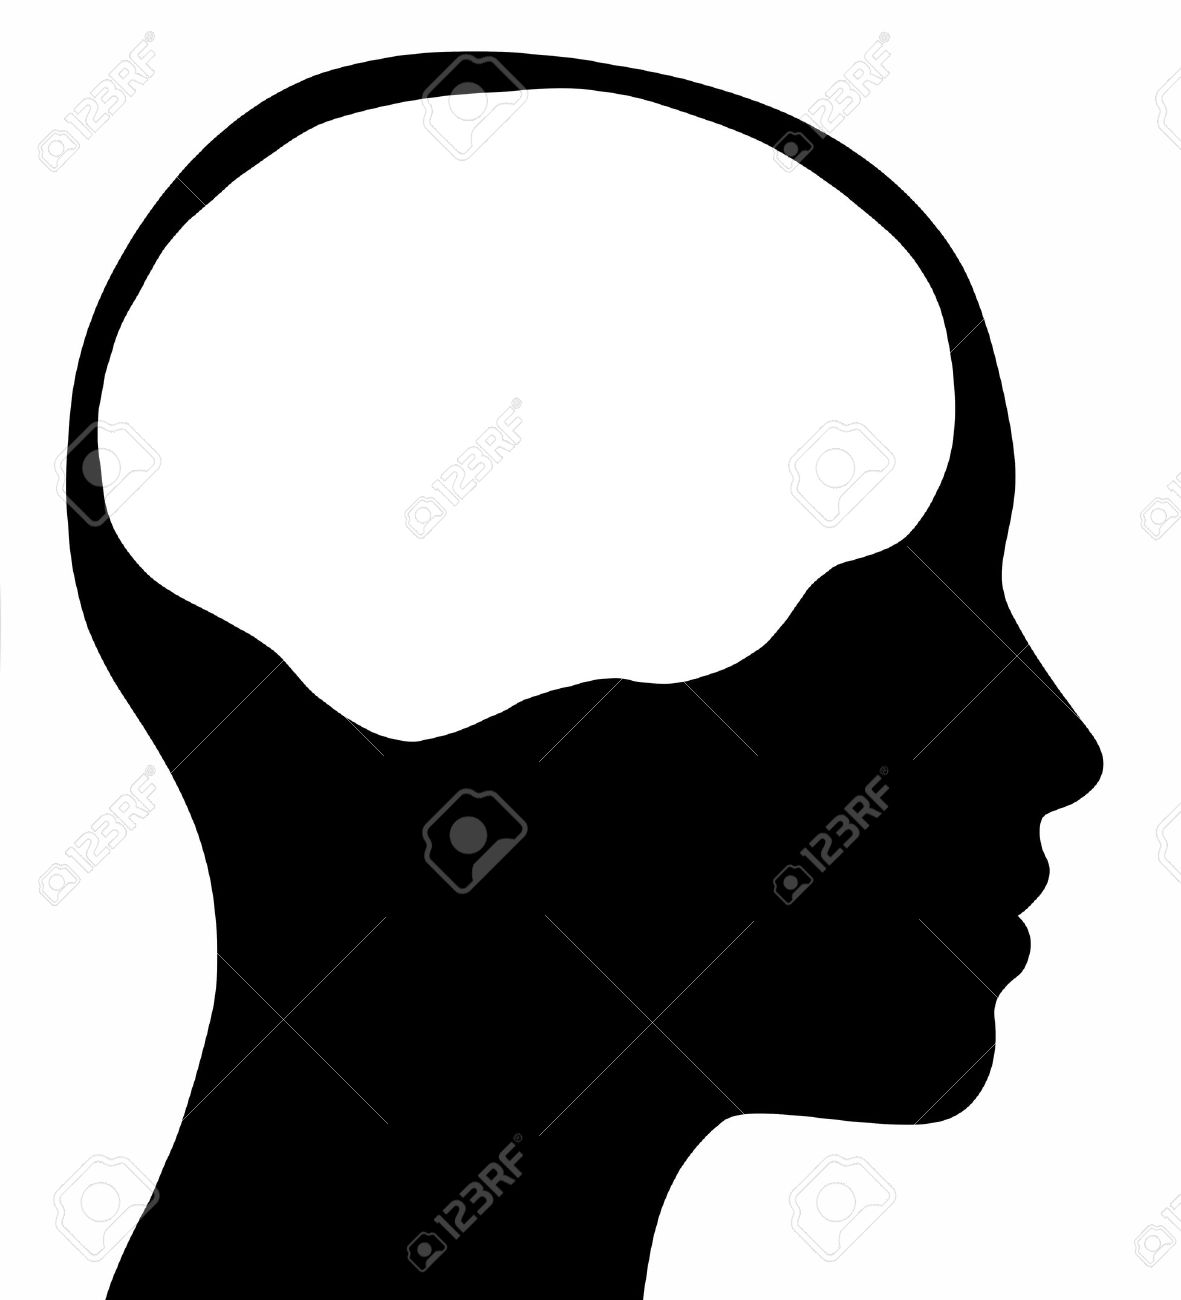 A graphic of a female head silhouette with a white brain area Isolated on a solid white background - 15149102